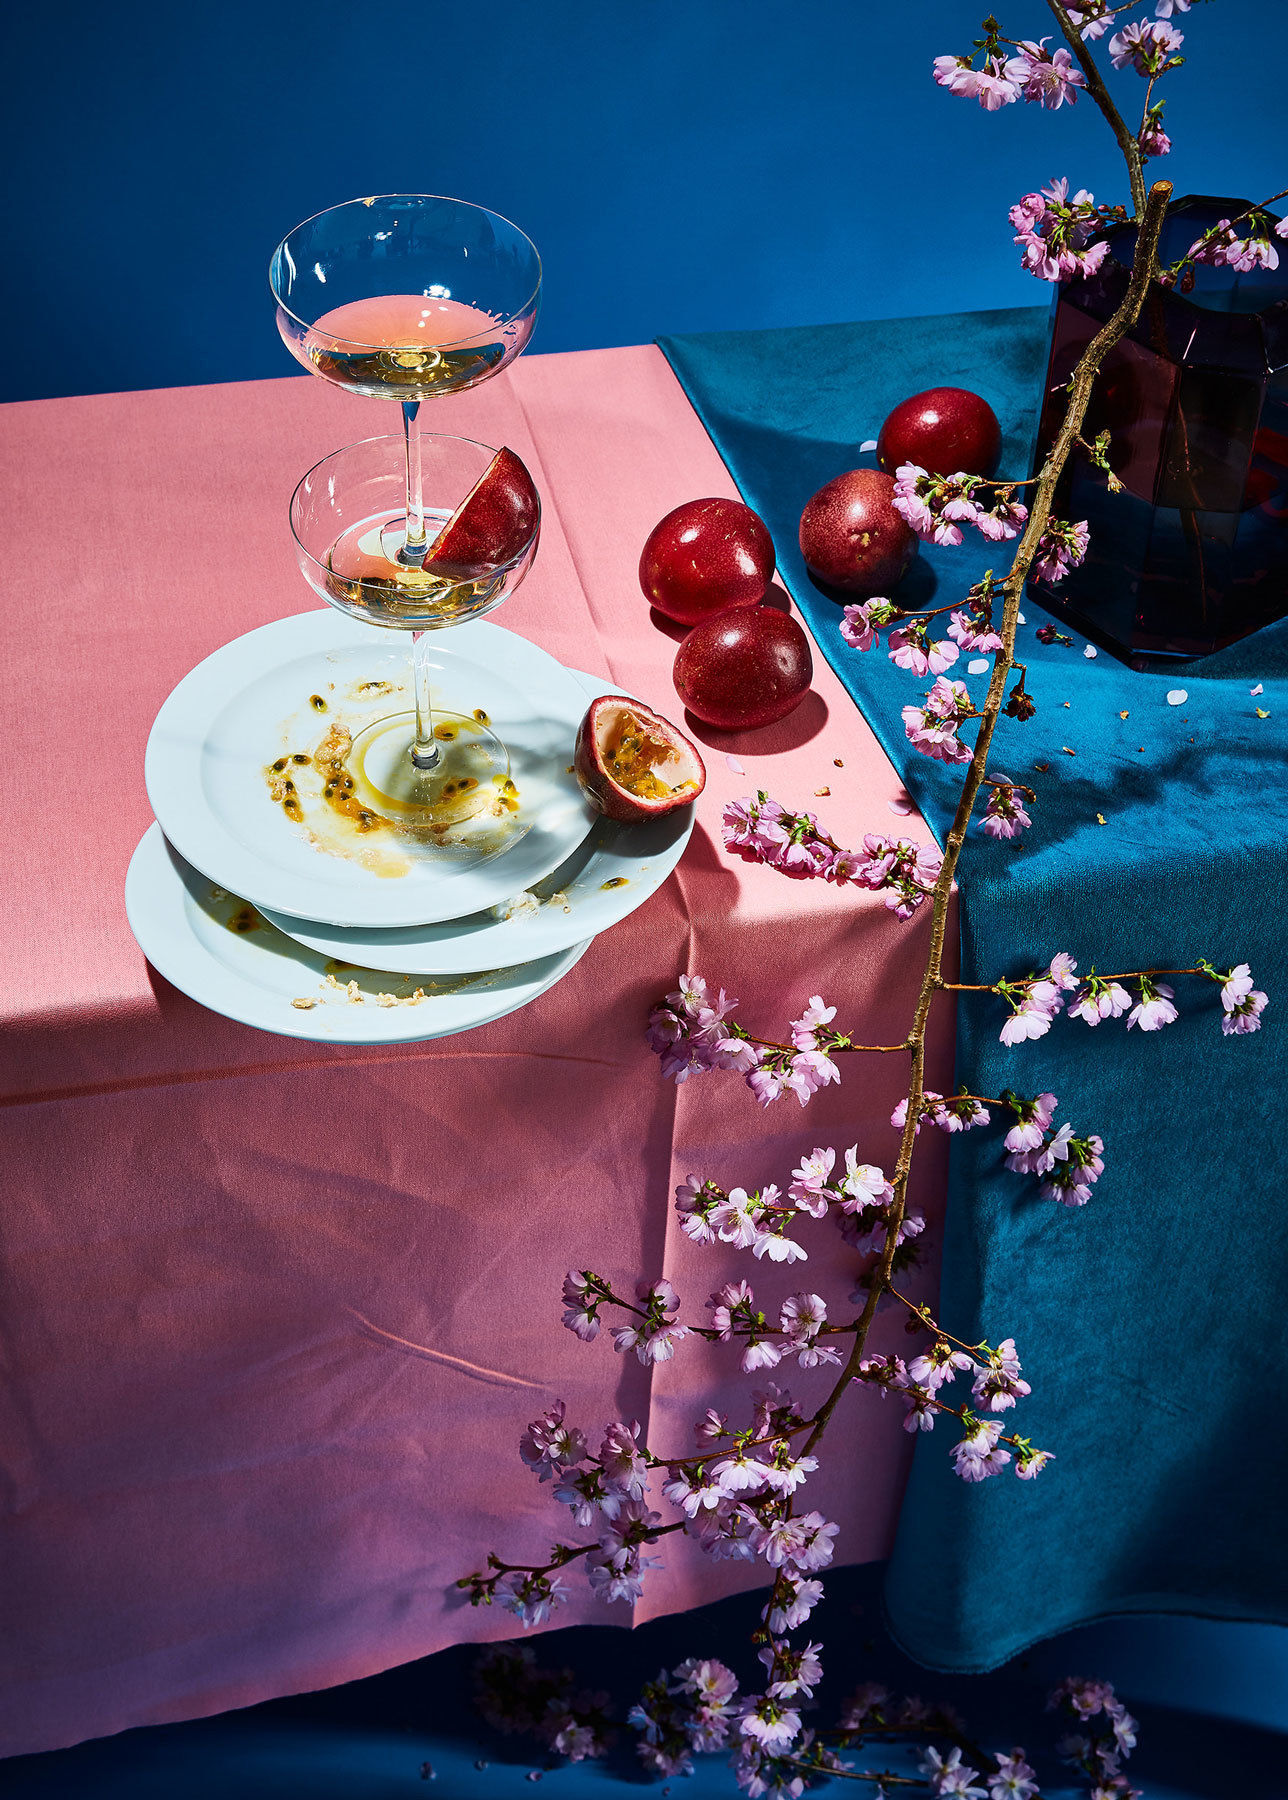 REINHARD HUNGER for The Ingredient, client magazine by Neff